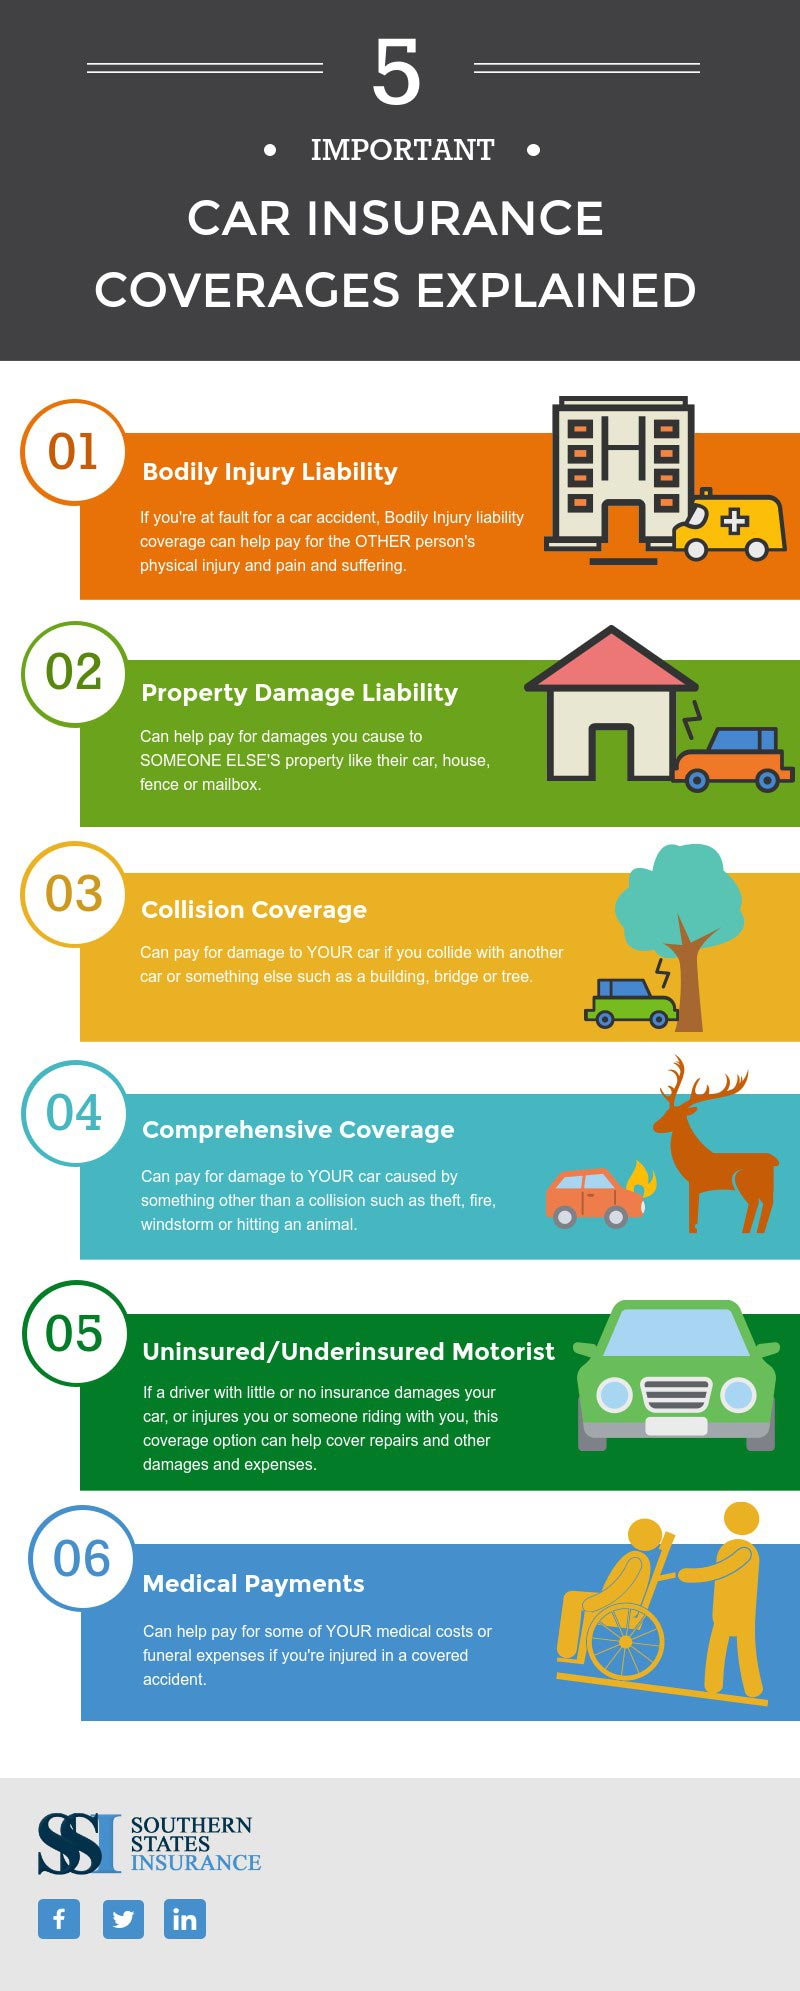 5 Important Car Insurance Coverages Explained [Infographic]